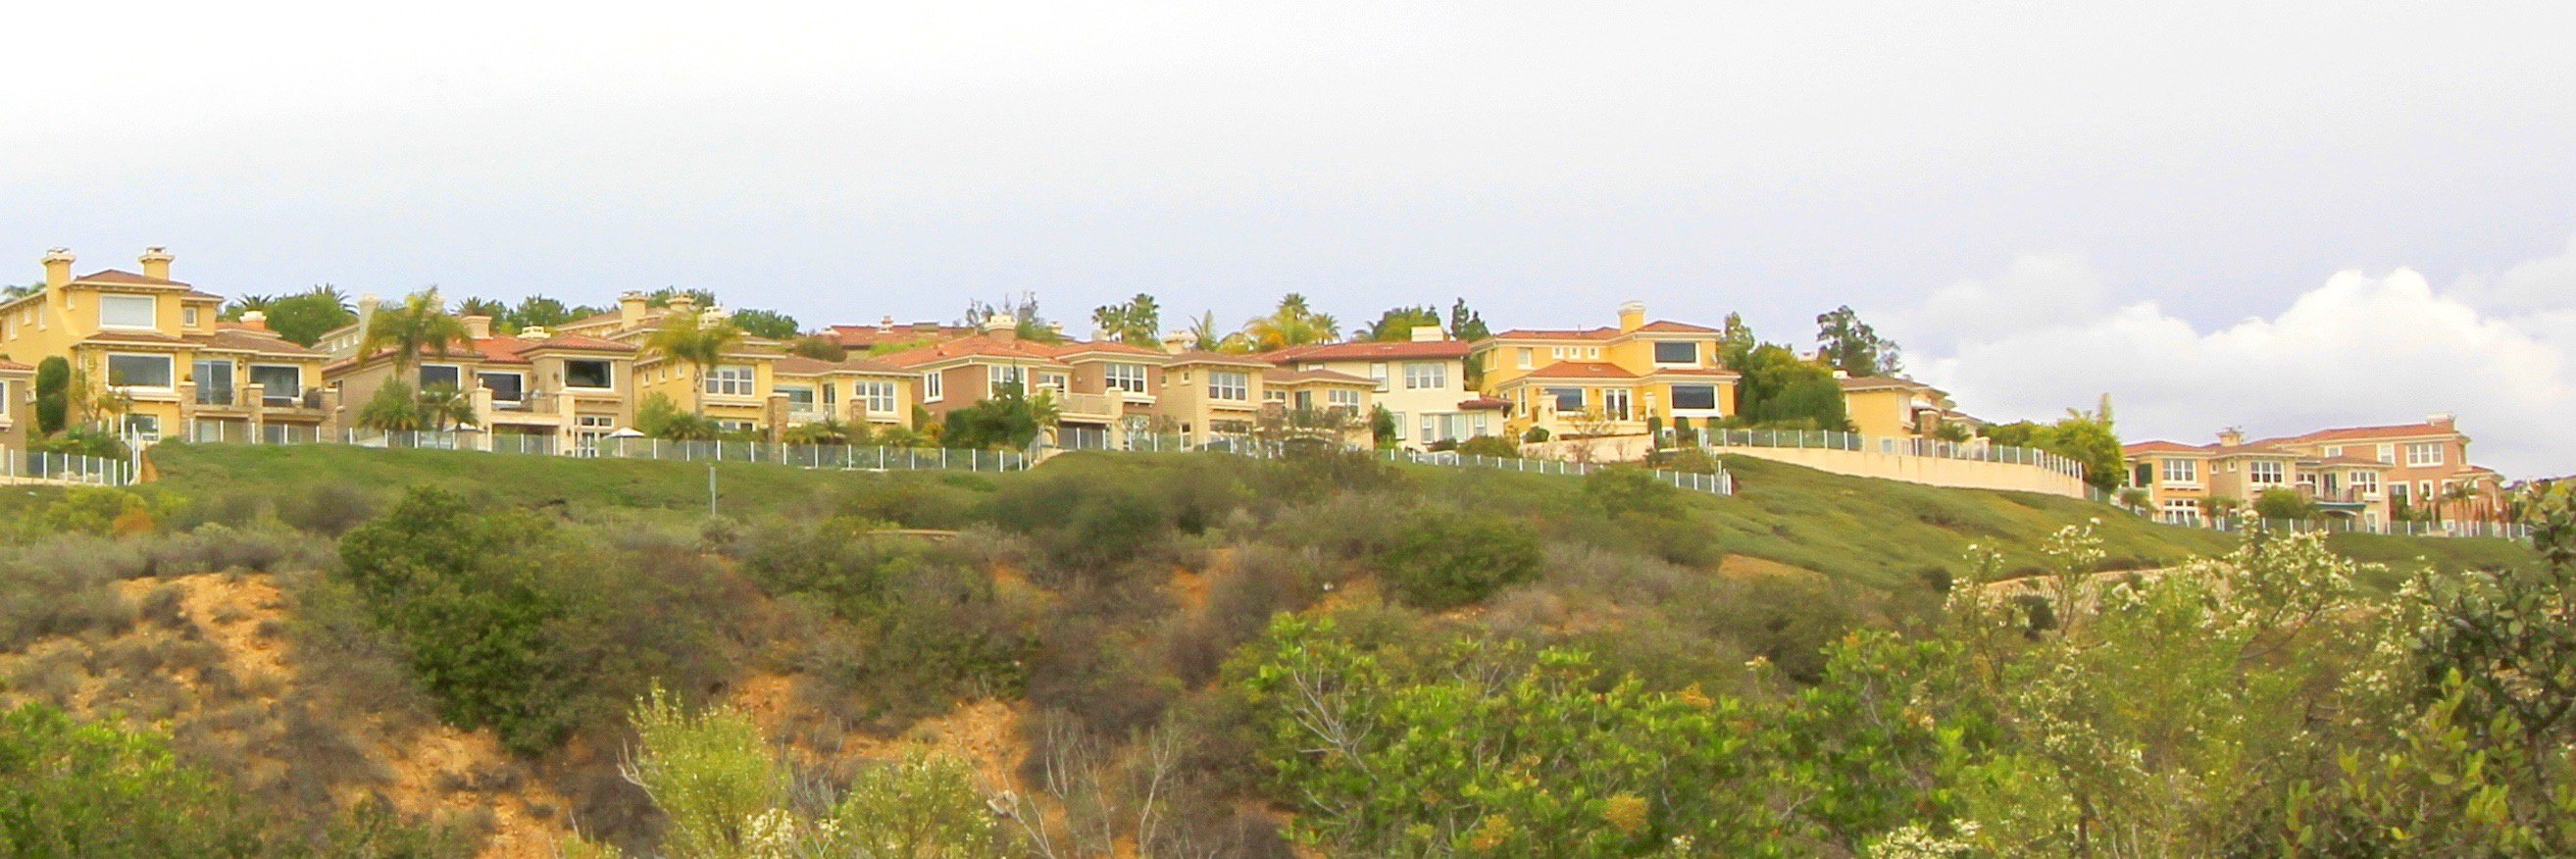 Pelican Ridge is a gated hillside custom home community in Newport Coast CA